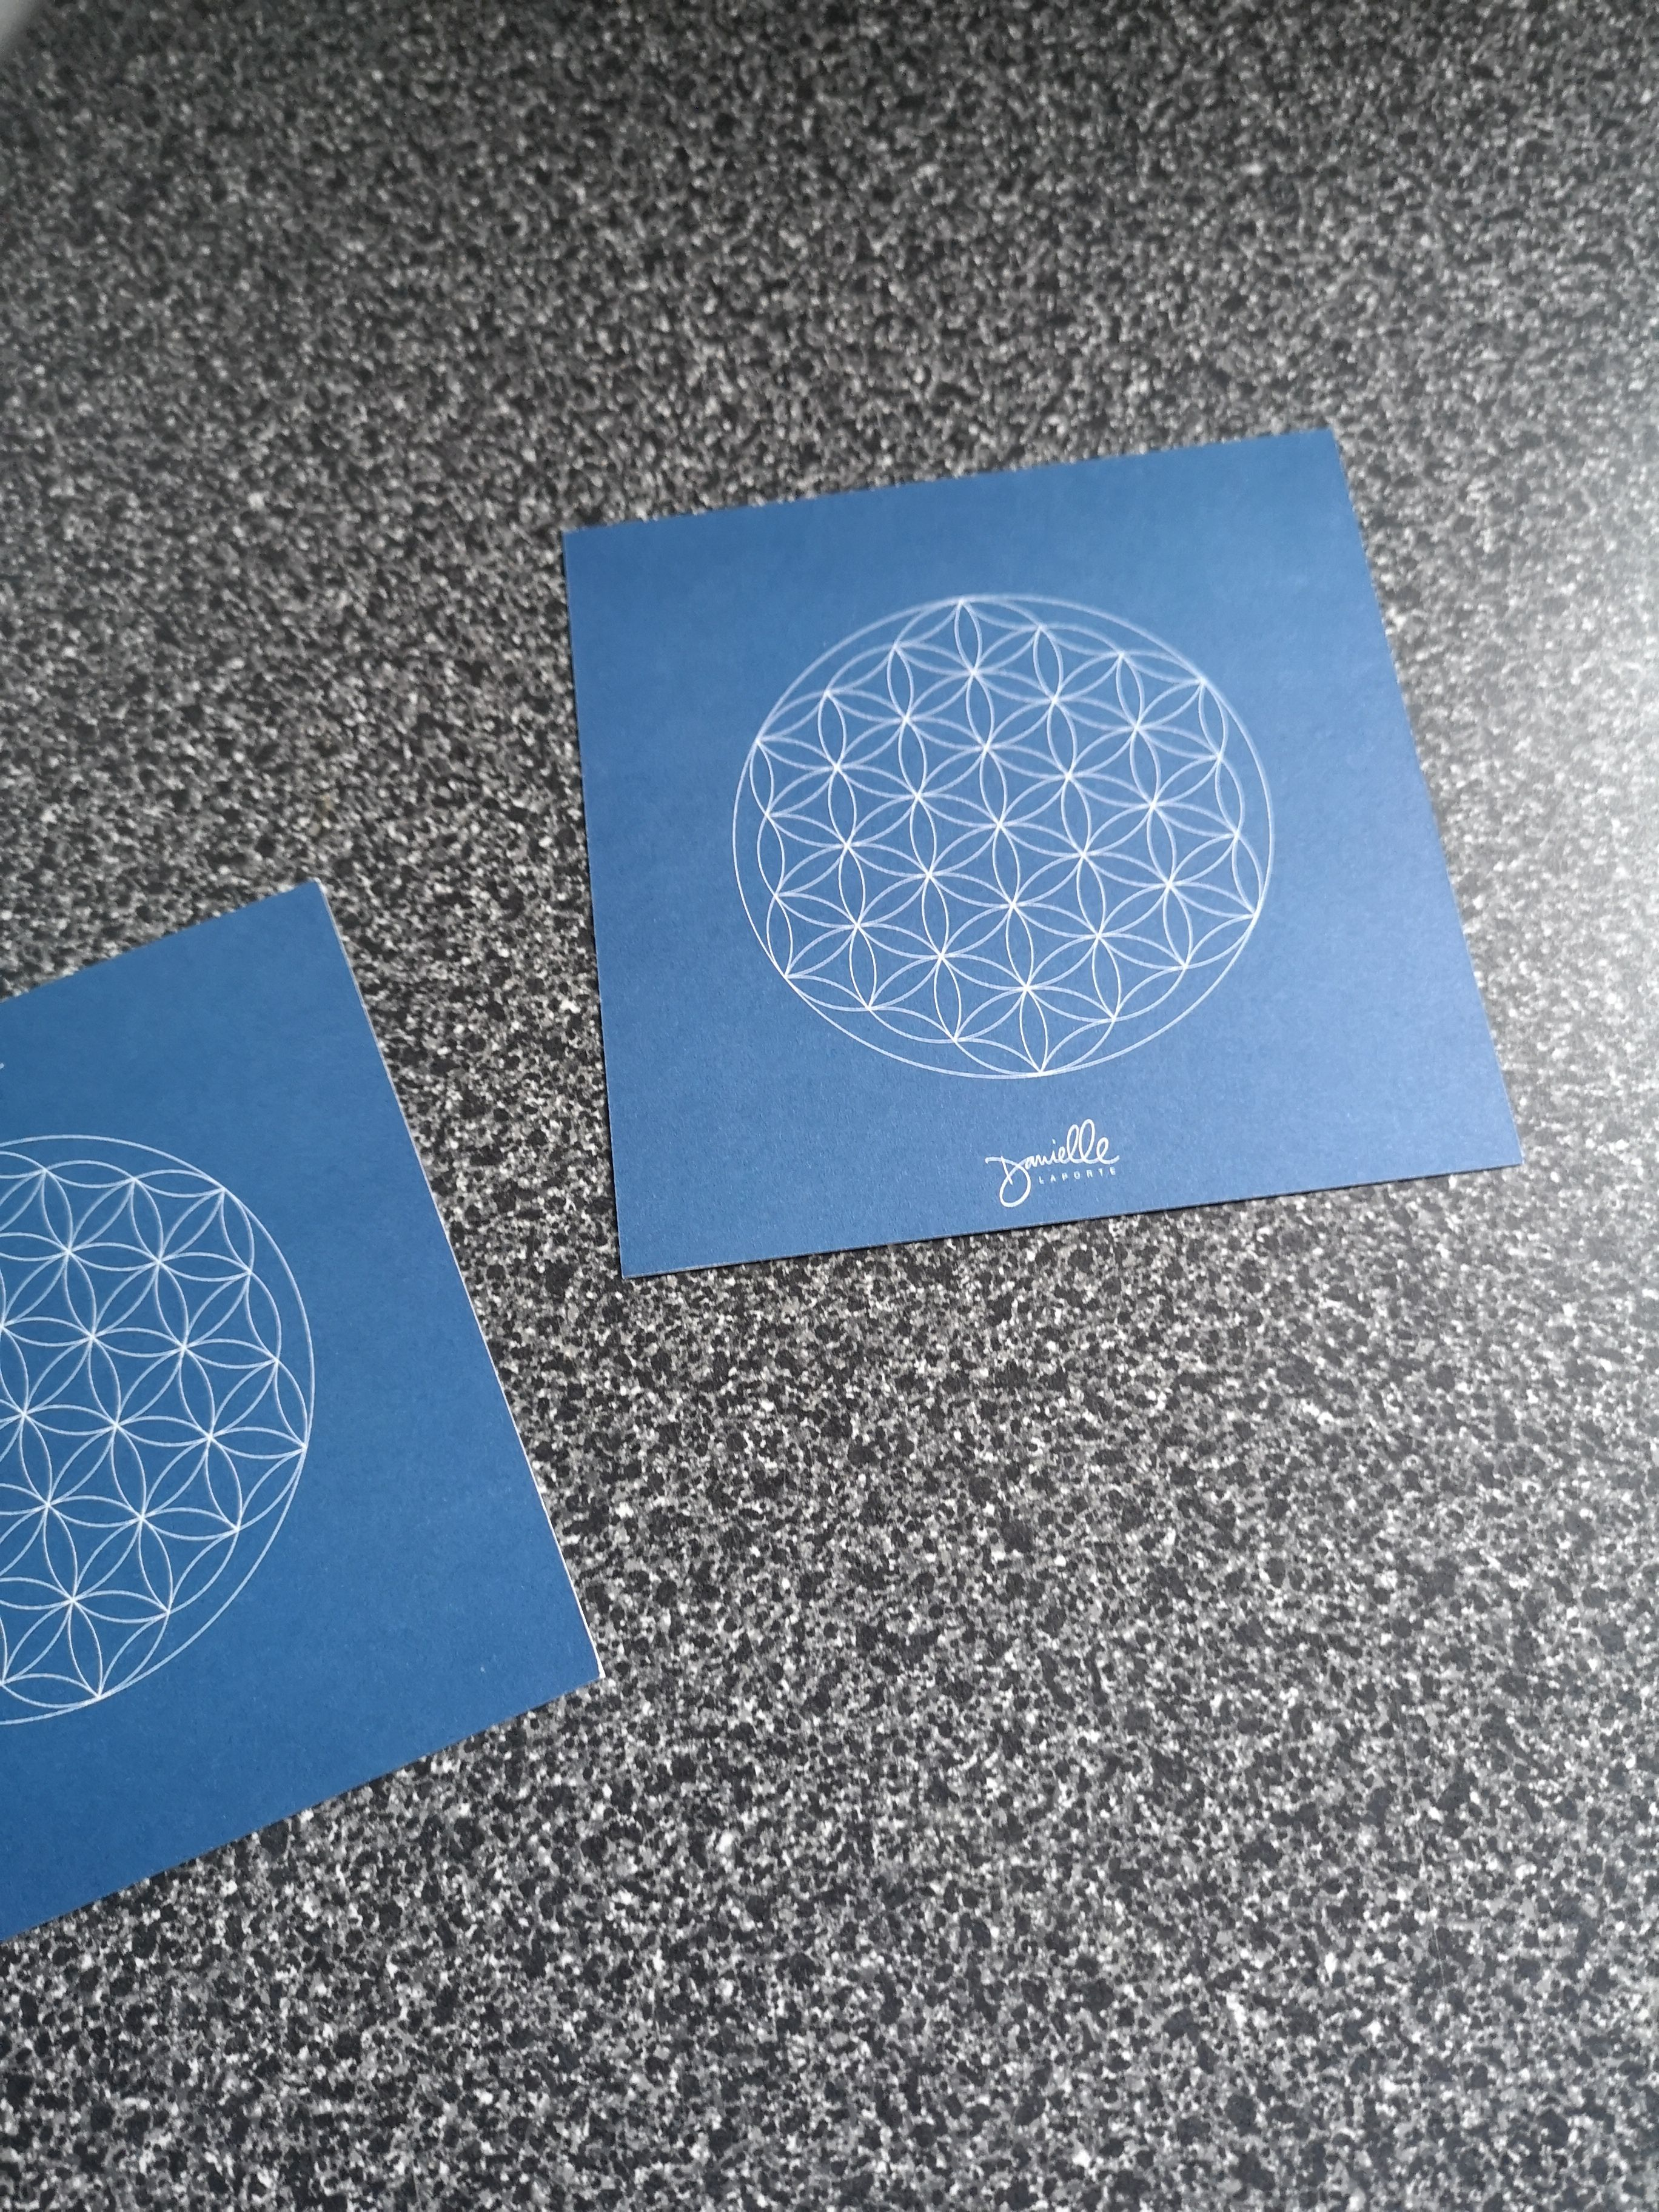 Cards in gift registration package for #VYC2020.  Intend to place under plants and/or infusions to soak up #sacredgeometry #floweroflife.  Victoria Yoga conference @ UVic this weekend.  Includes Mindful Labyrinth Pathway!